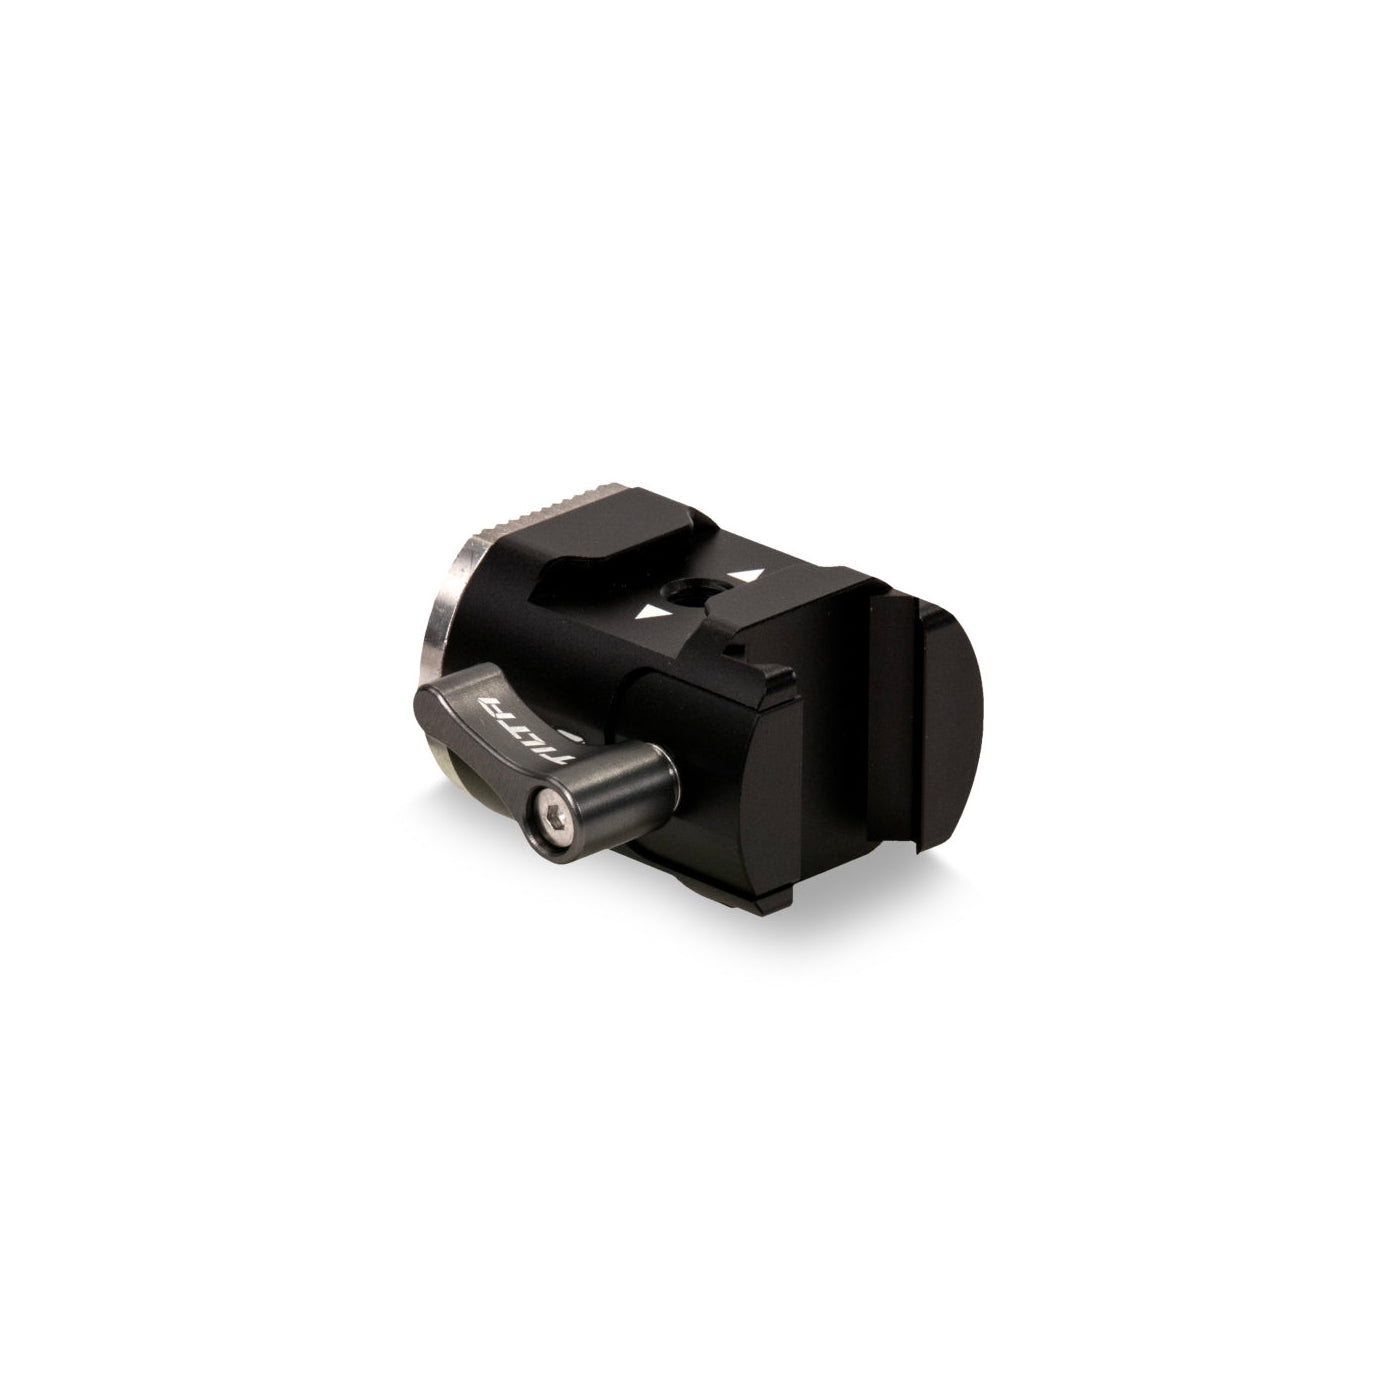 TILTA|Right Side NATO Rail to Rosette Adapter(for DJI RS2) - Viledge Online Store